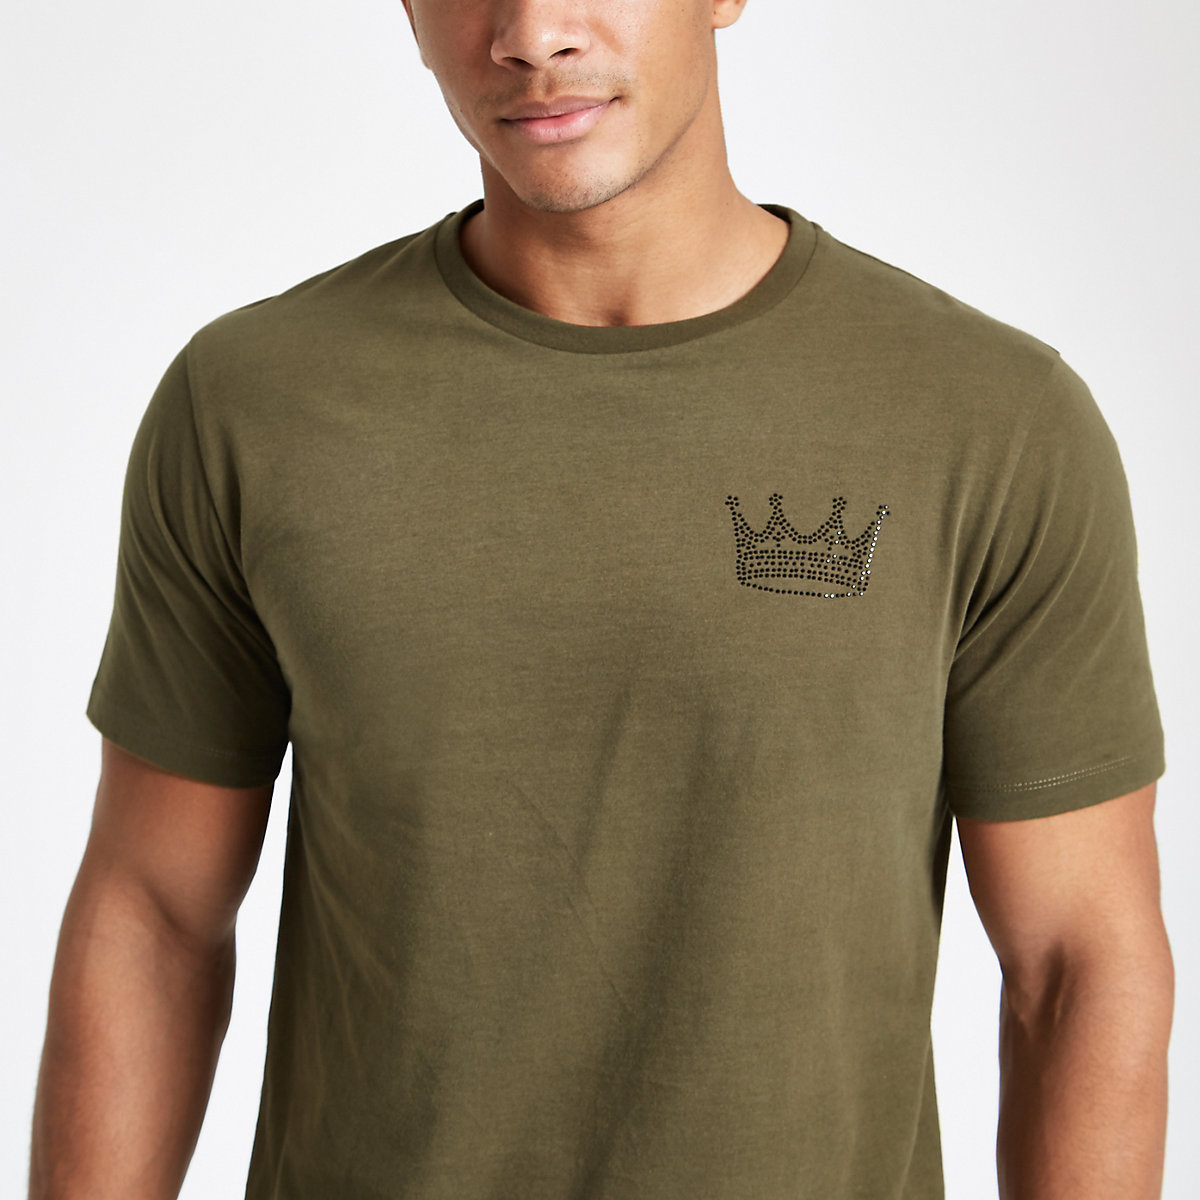 Khaki slim fit rhinestone crown T-shirt